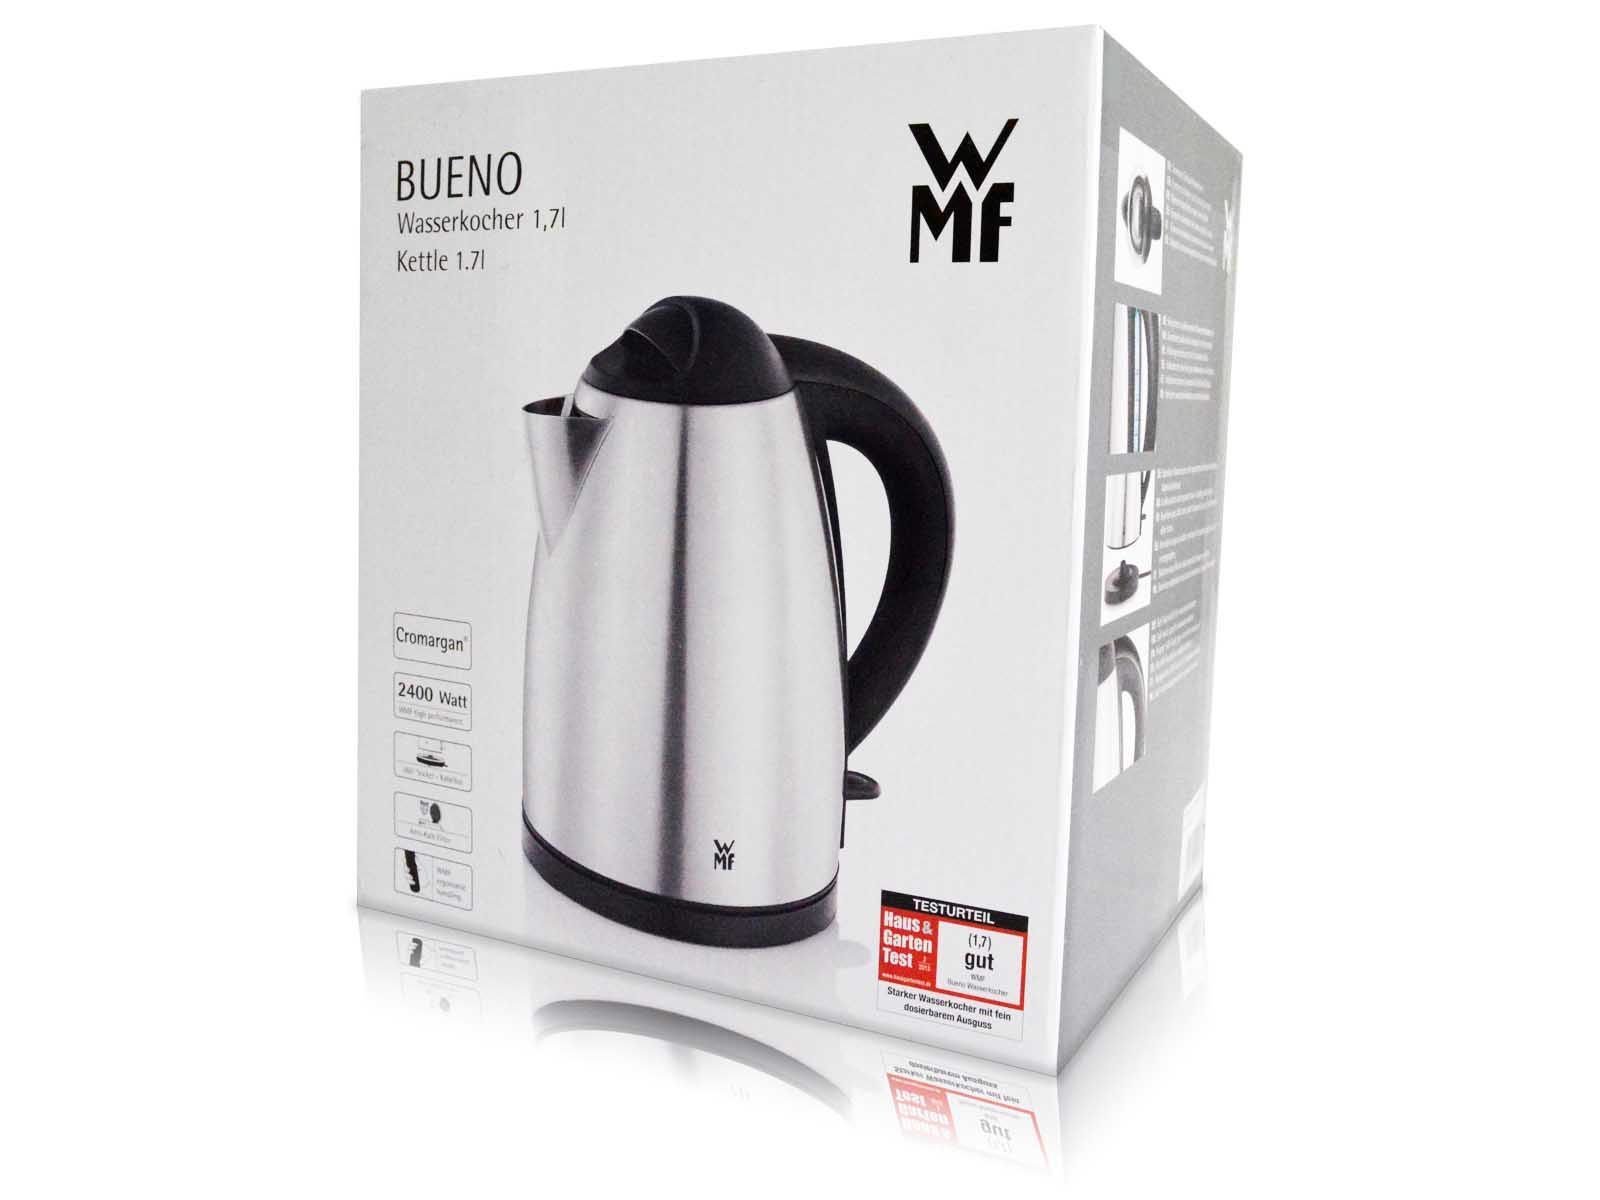 wmf bueno wasserkocher kettle edelstahl 2400 watt 1 7 l. Black Bedroom Furniture Sets. Home Design Ideas